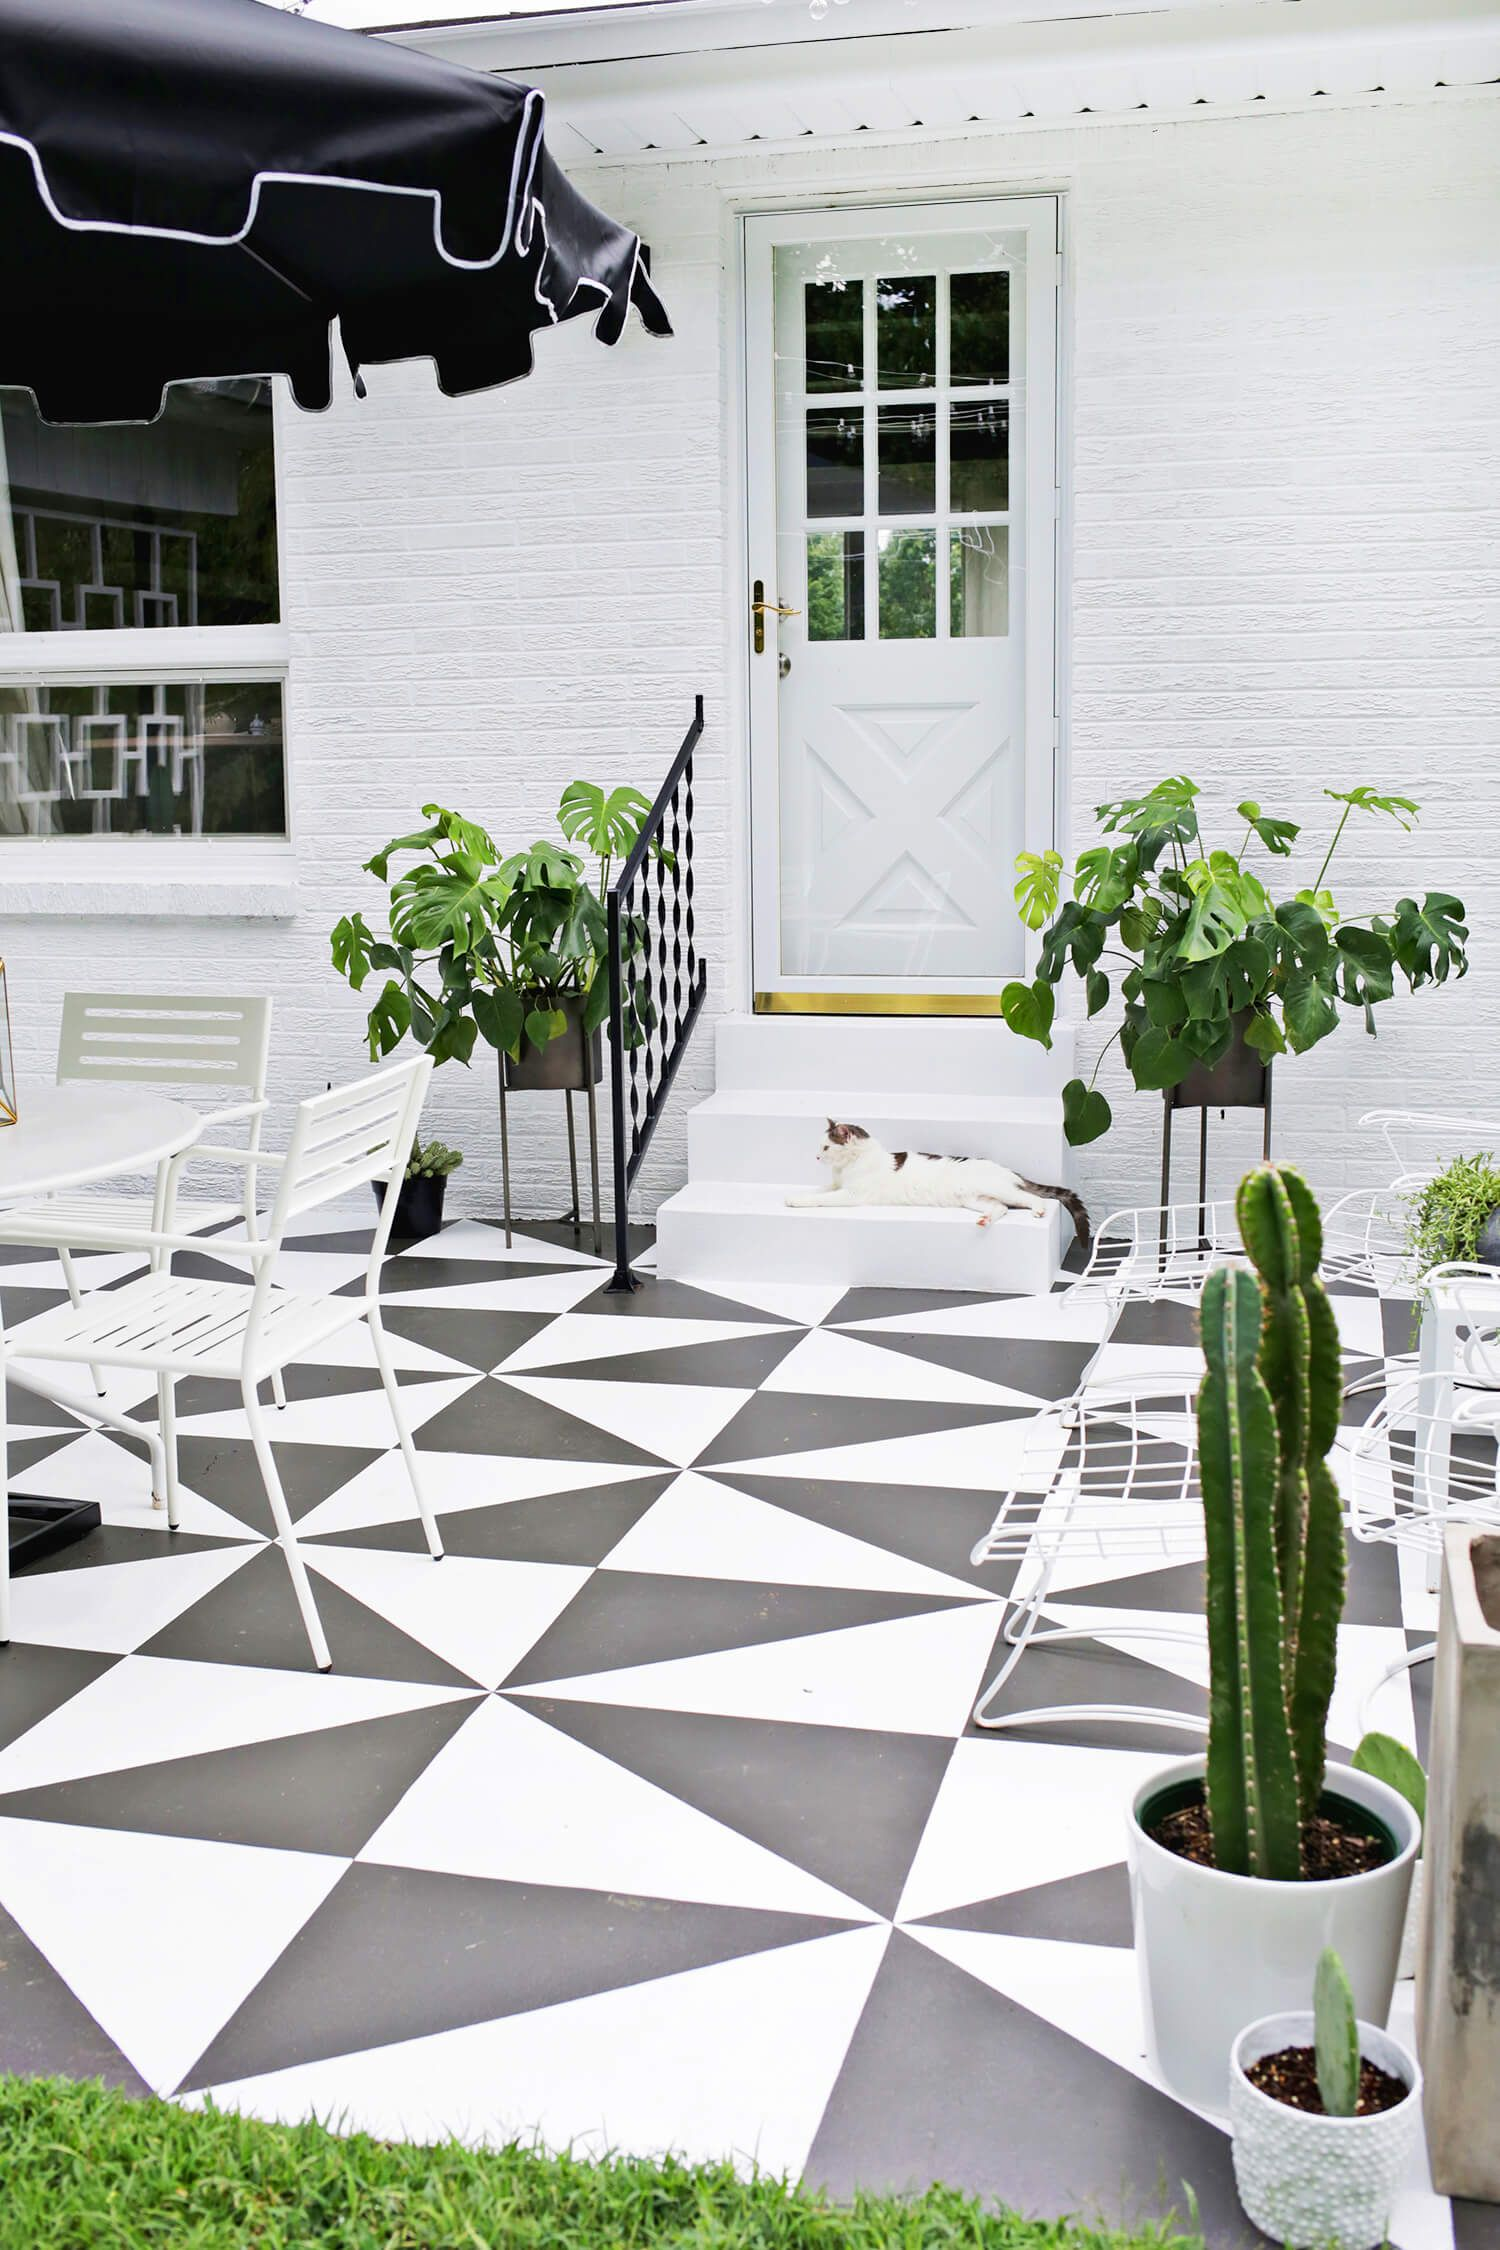 Painted Patio Tile Diy A Beautiful Mess Paint Concrete Patio Patio Tiles Painted Patio